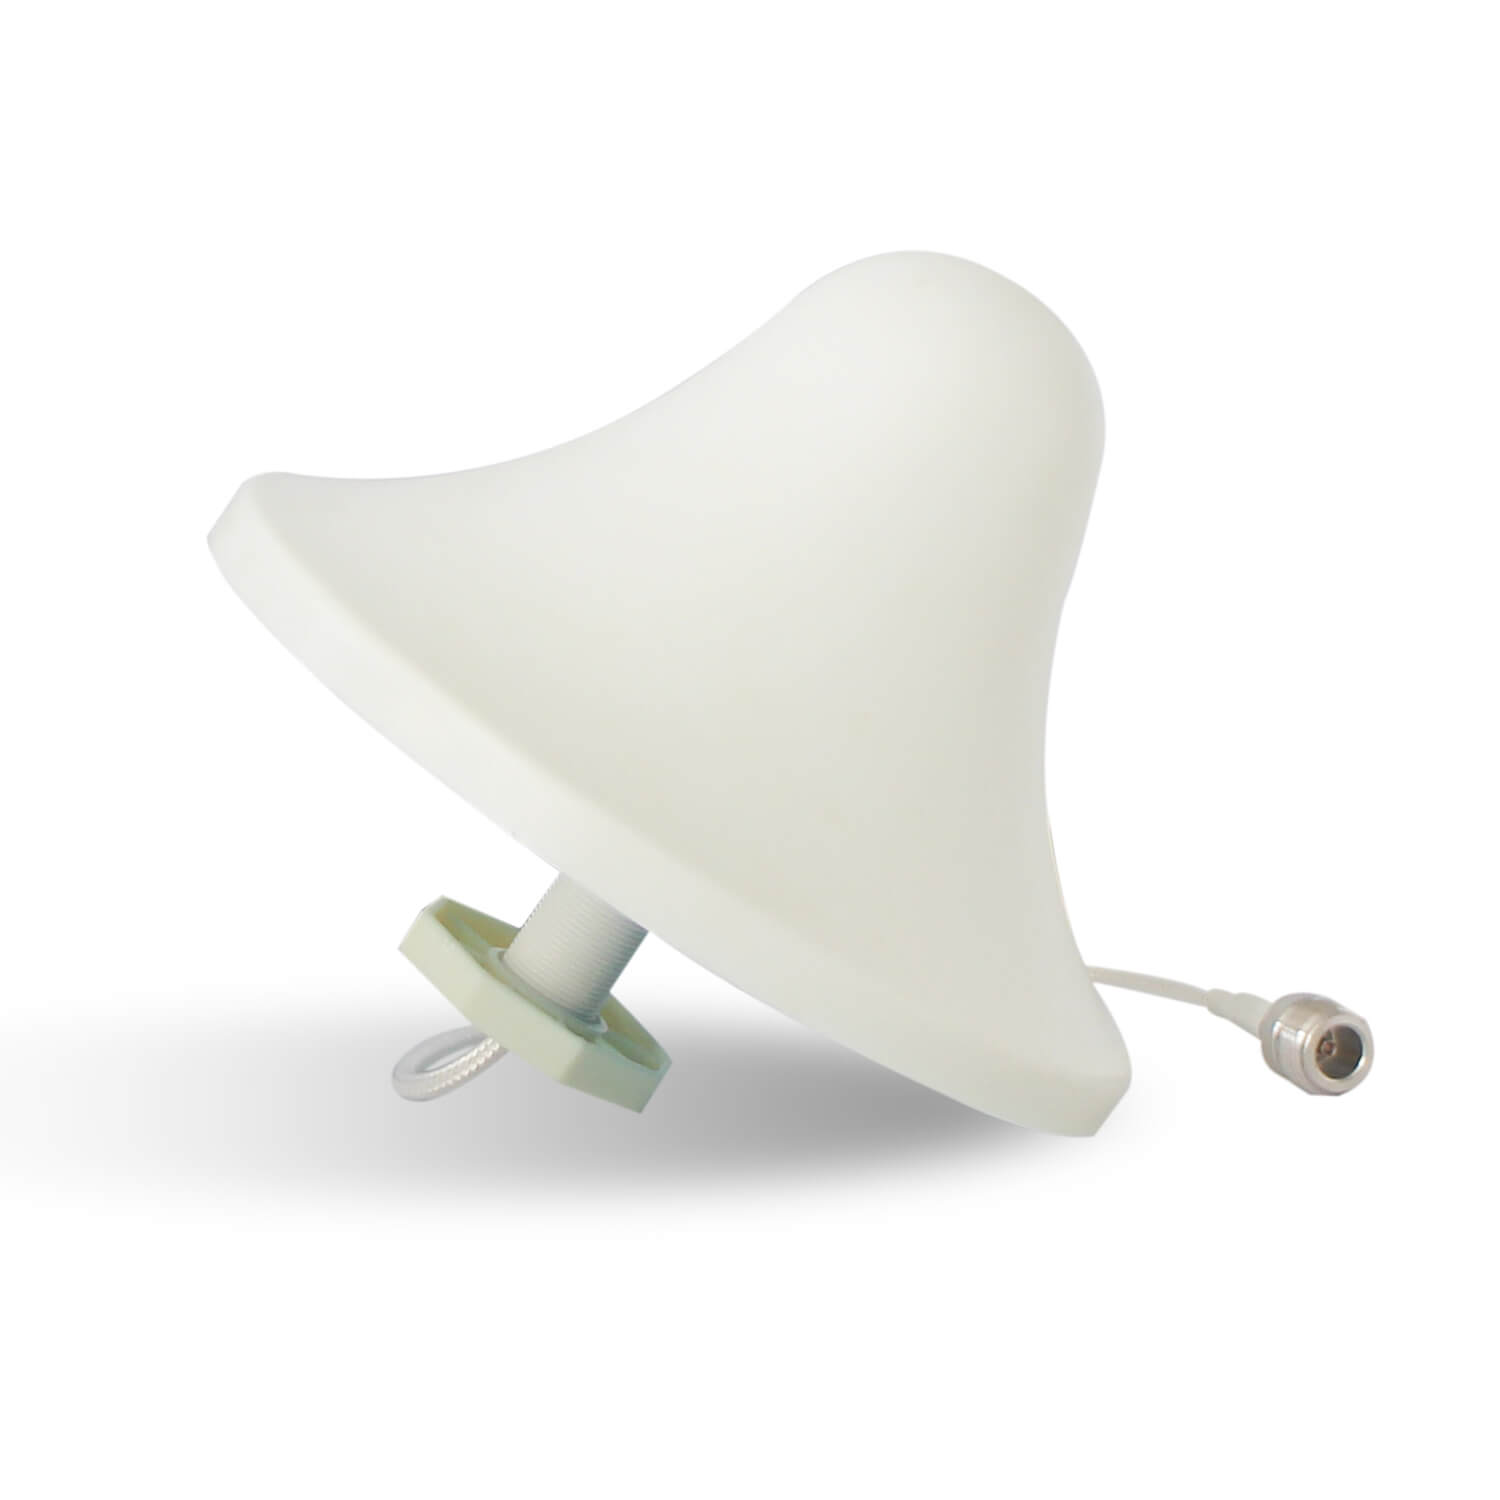 Hiboost-indoor ceiling mount dome antenna-1